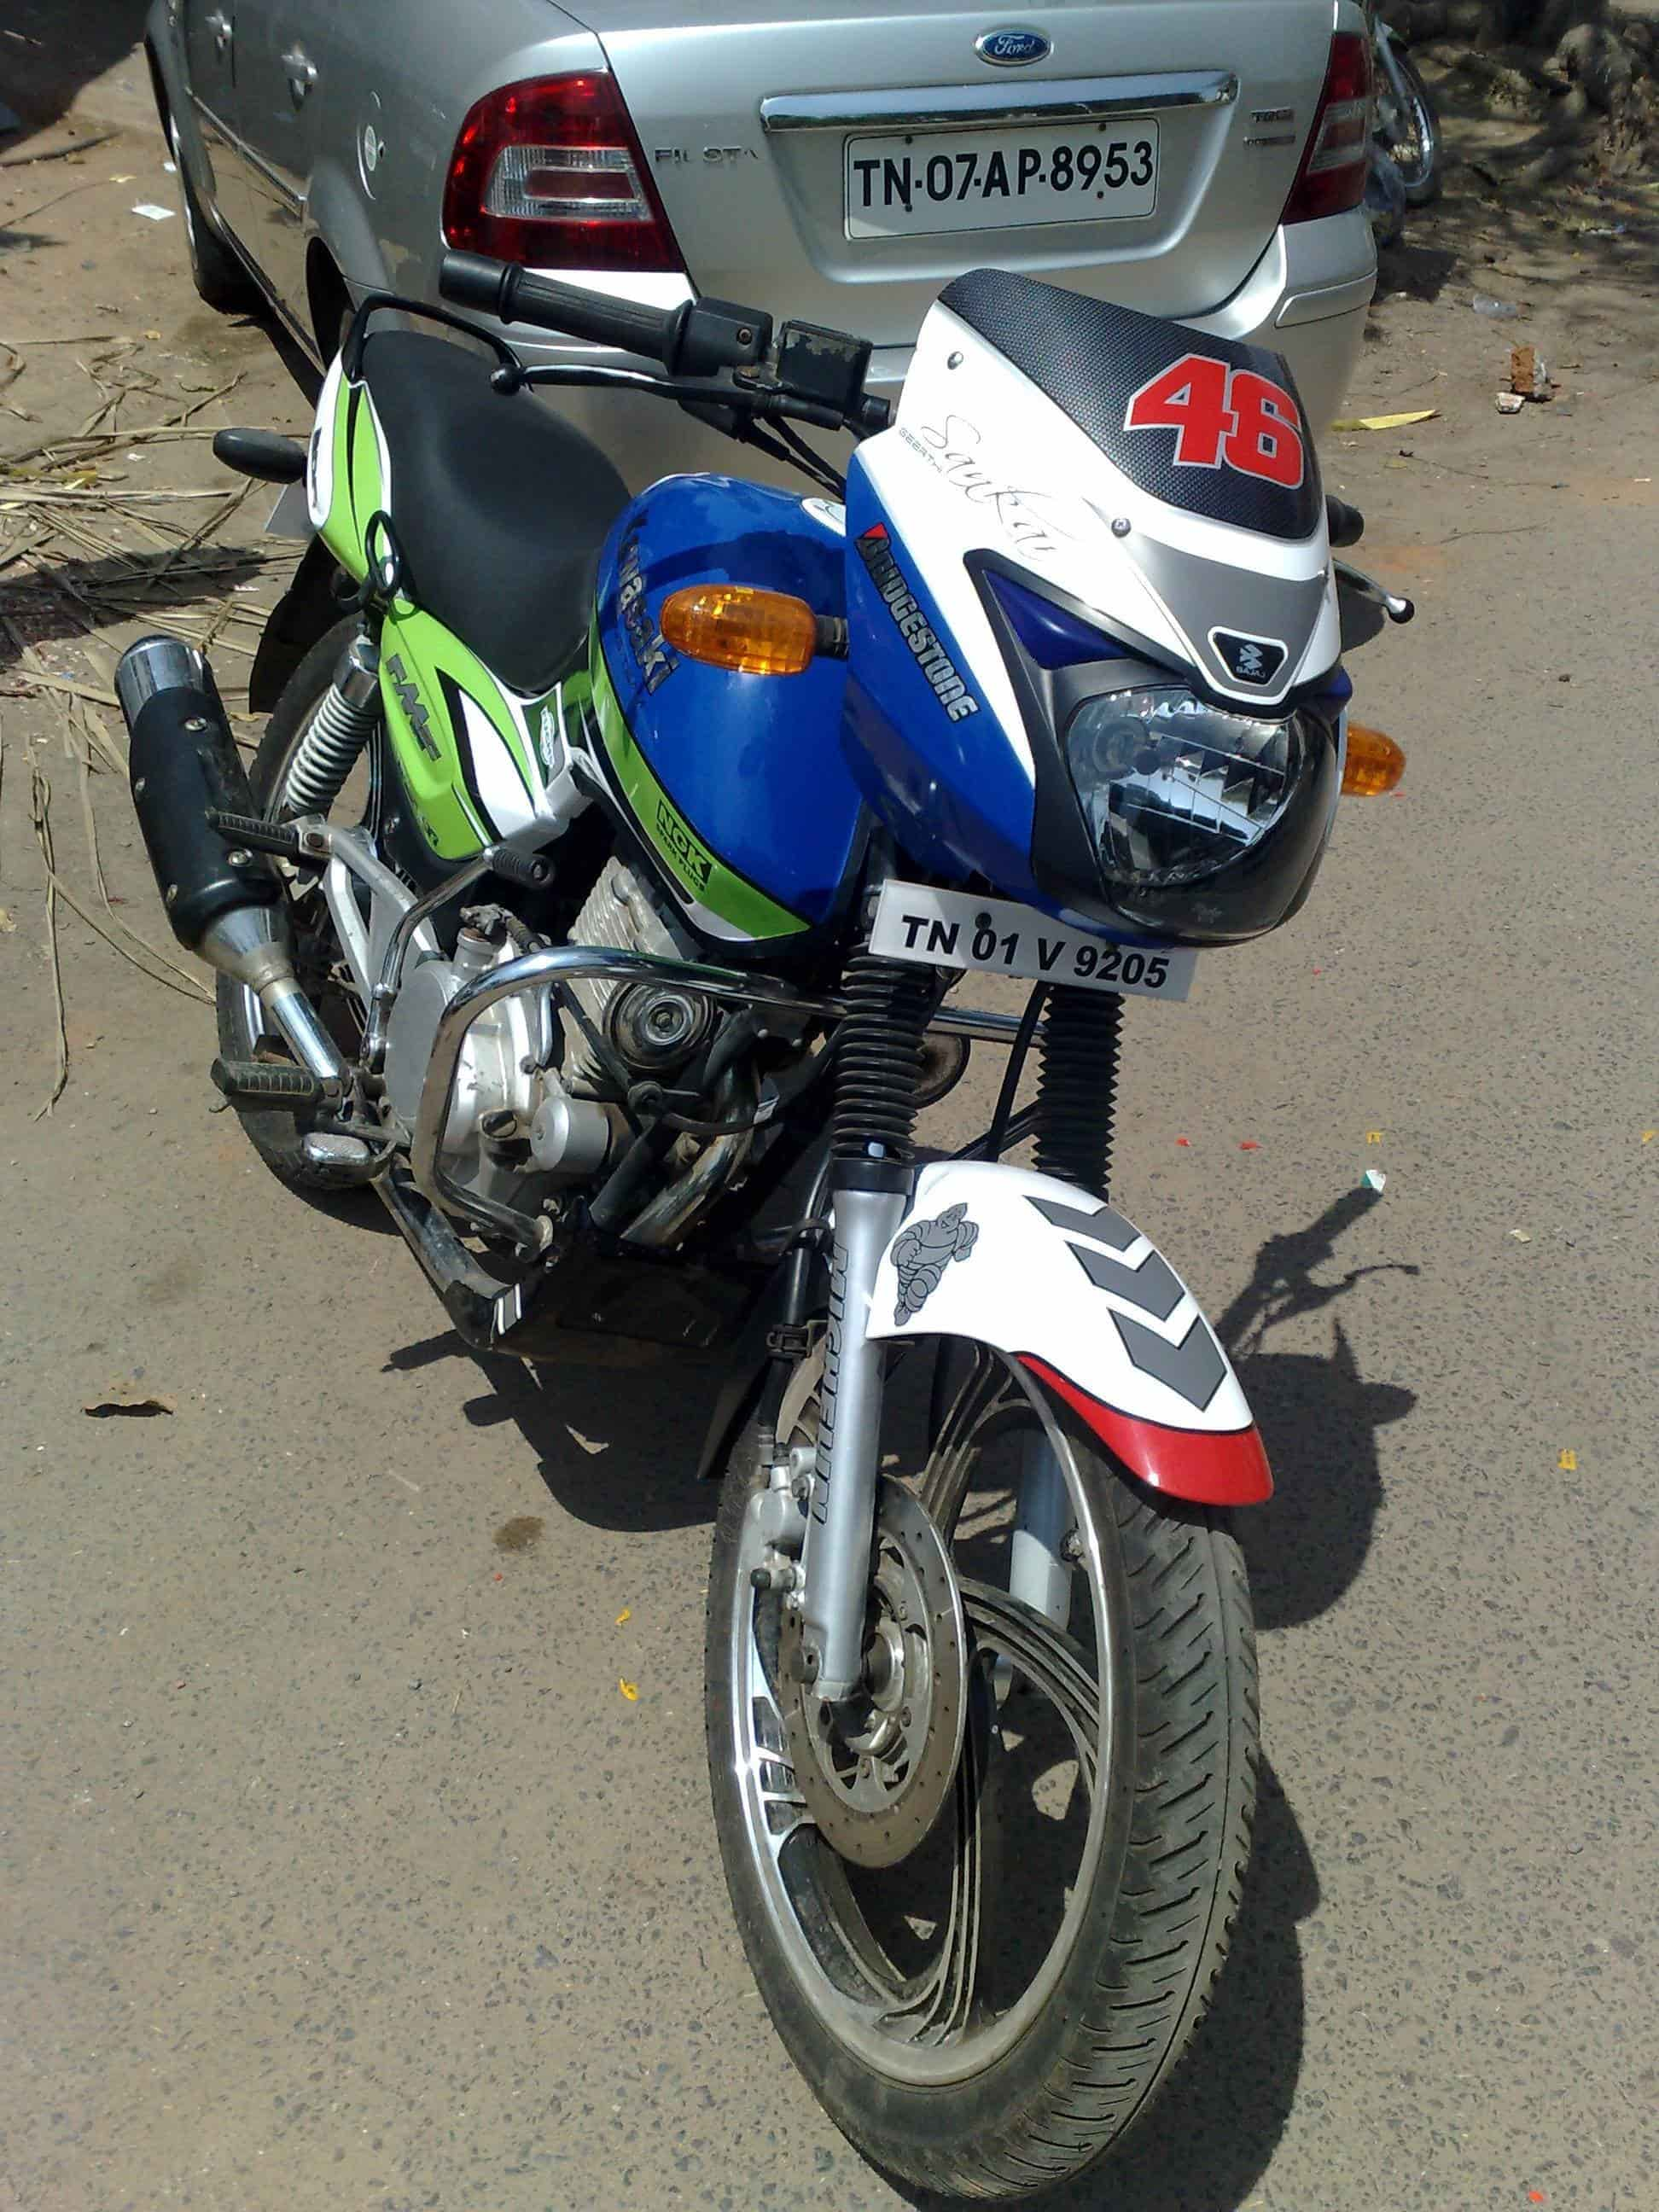 Bike stickering rathnaa stickers decal graphix photos porur chennai sticker dealers